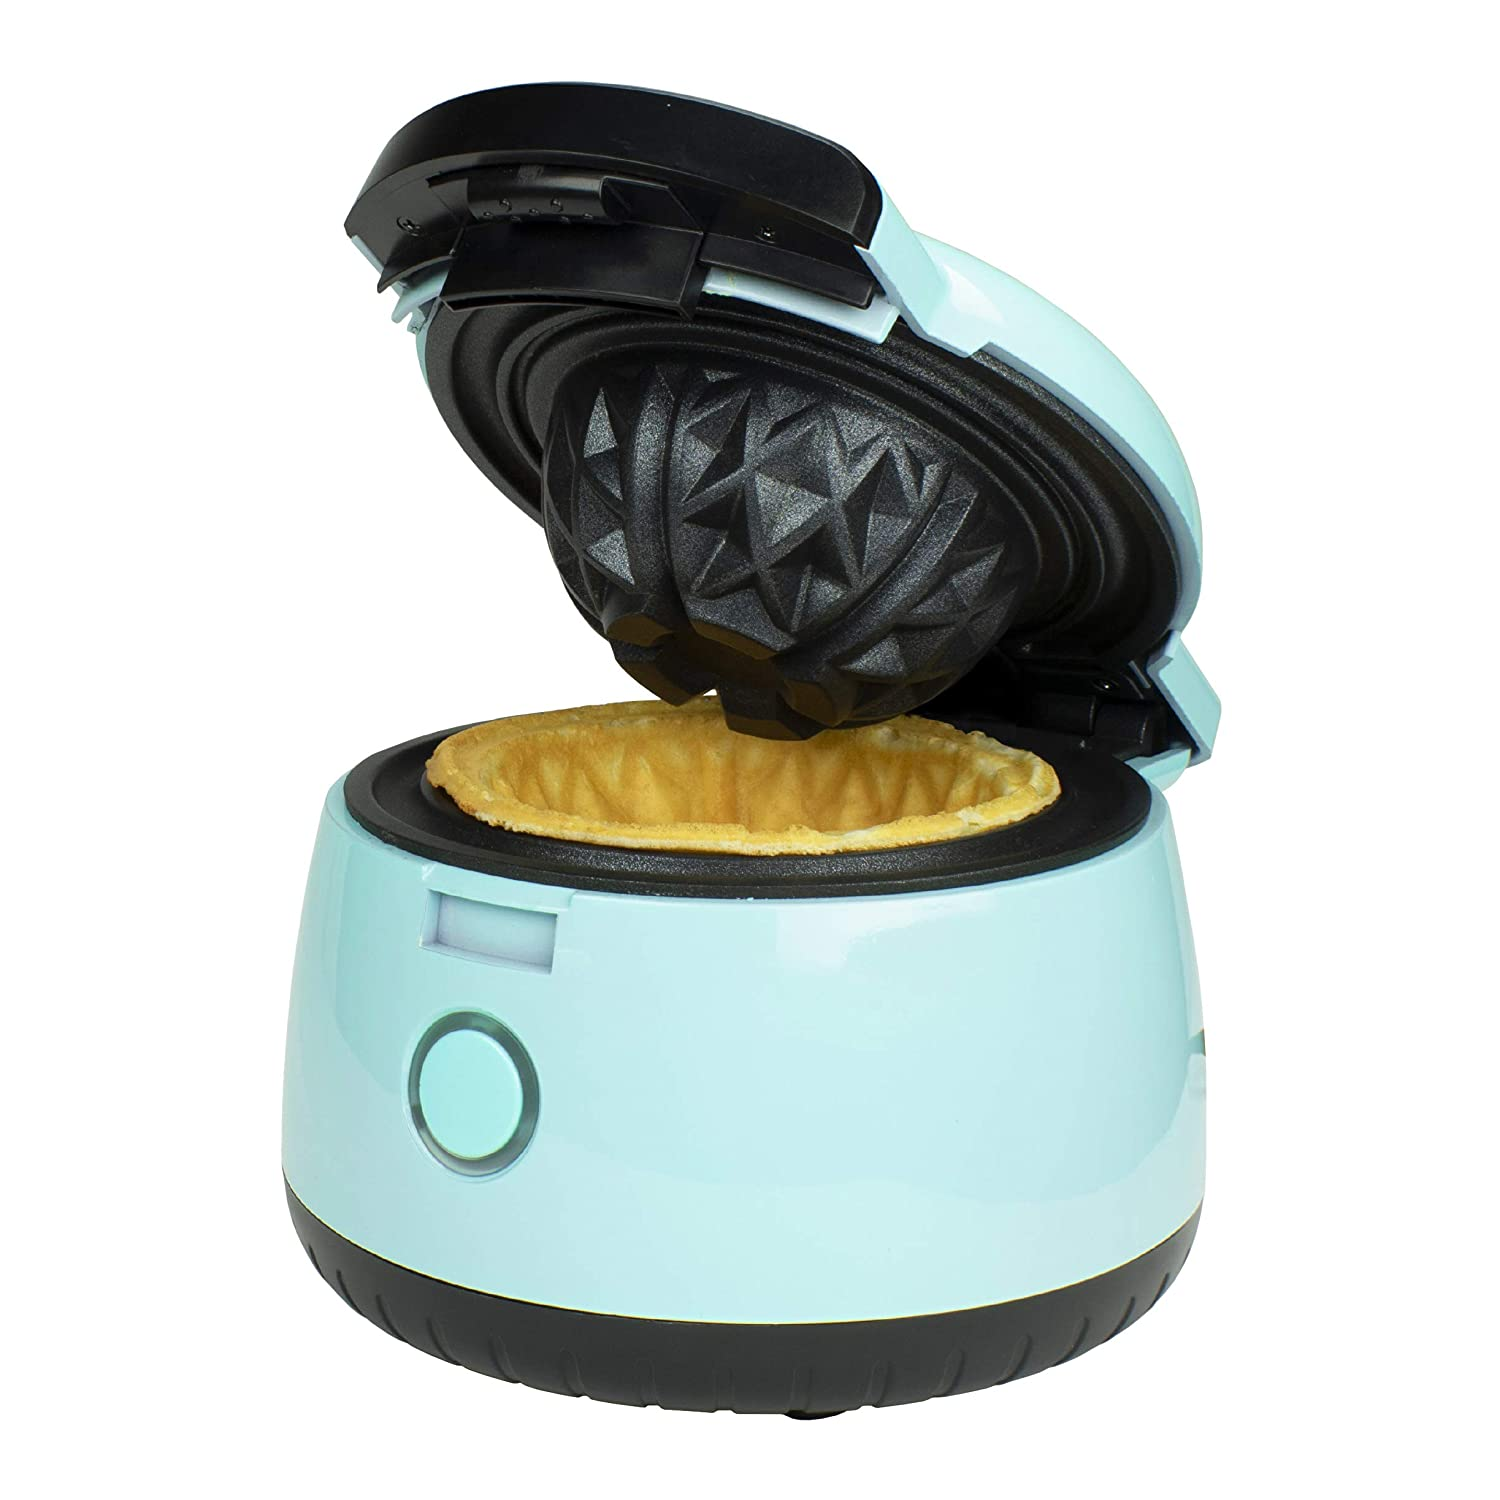 Brentwood TS-1401BL Waffle Bowl Maker, Blue, One Size